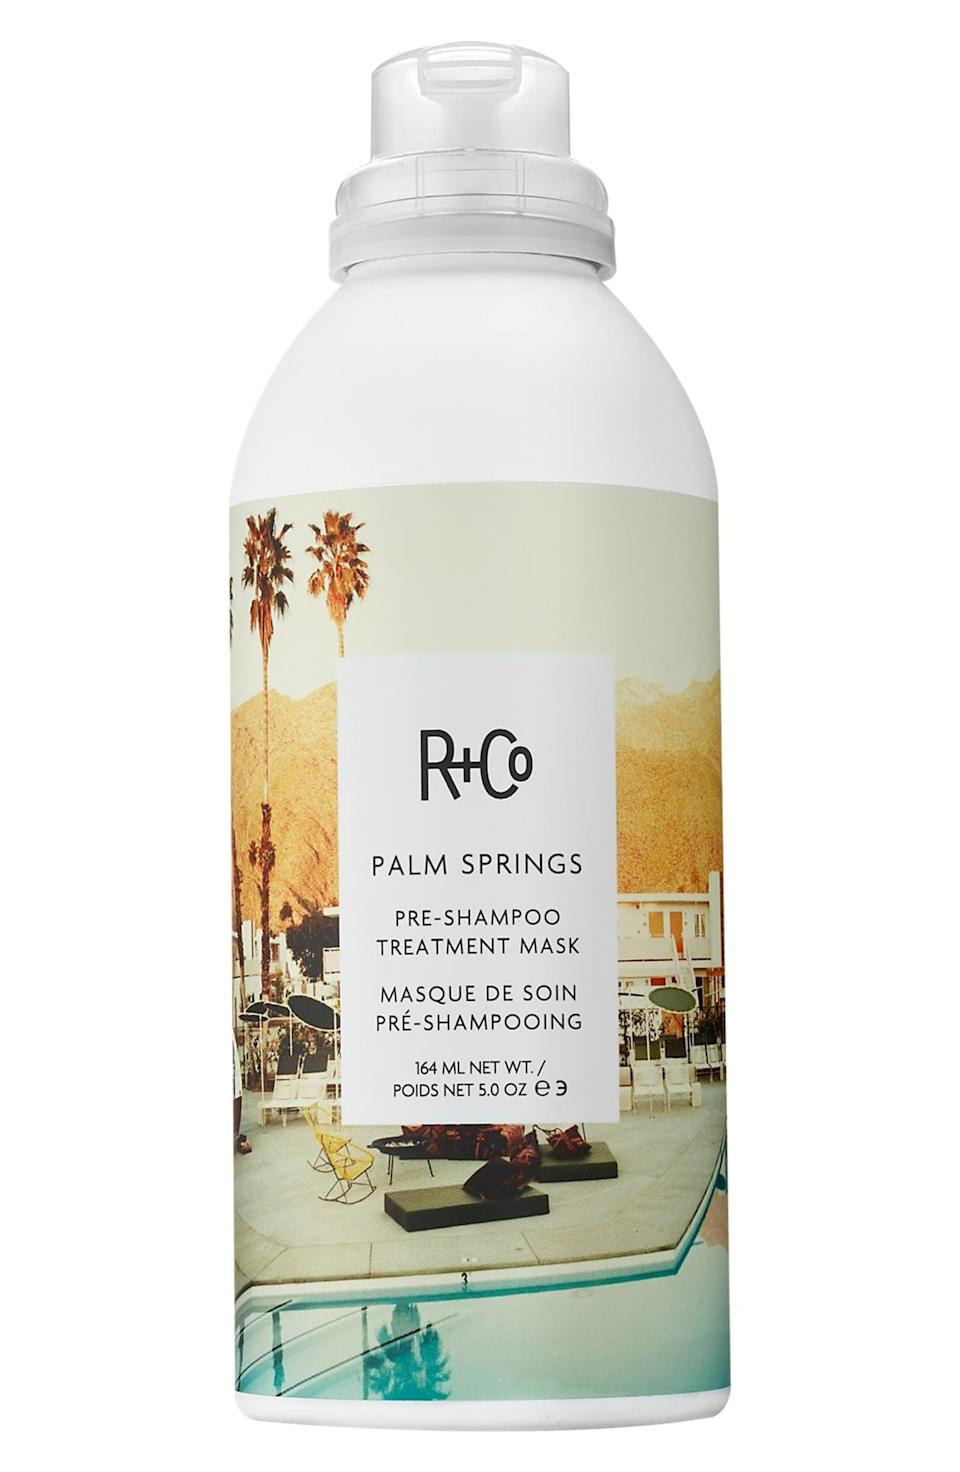 """<p>For hair that's frequently heat styled or color-treated, the <a href=""""https://www.popsugar.com/buy/RCo-Palm-Springs-Pre-Shampoo-Treatment-Mask-586440?p_name=R%2BCo%20Palm%20Springs%20Pre-Shampoo%20Treatment%20Mask&retailer=shop.nordstrom.com&pid=586440&price=32&evar1=bella%3Aus&evar9=47589908&evar98=https%3A%2F%2Fwww.popsugar.com%2Fphoto-gallery%2F47589908%2Fimage%2F47590163%2FRCo-Palm-Springs-Pre-Shampoo-Treatment-Mask&list1=hair%2Chair%20products%2Cbeauty%20shopping&prop13=api&pdata=1"""" class=""""link rapid-noclick-resp"""" rel=""""nofollow noopener"""" target=""""_blank"""" data-ylk=""""slk:R+Co Palm Springs Pre-Shampoo Treatment Mask"""">R+Co Palm Springs Pre-Shampoo Treatment Mask</a> ($32) is an ideal product. It uses a mixture of oils and butters that pump some extra life into your hair before being shampooed and styled.</p>"""